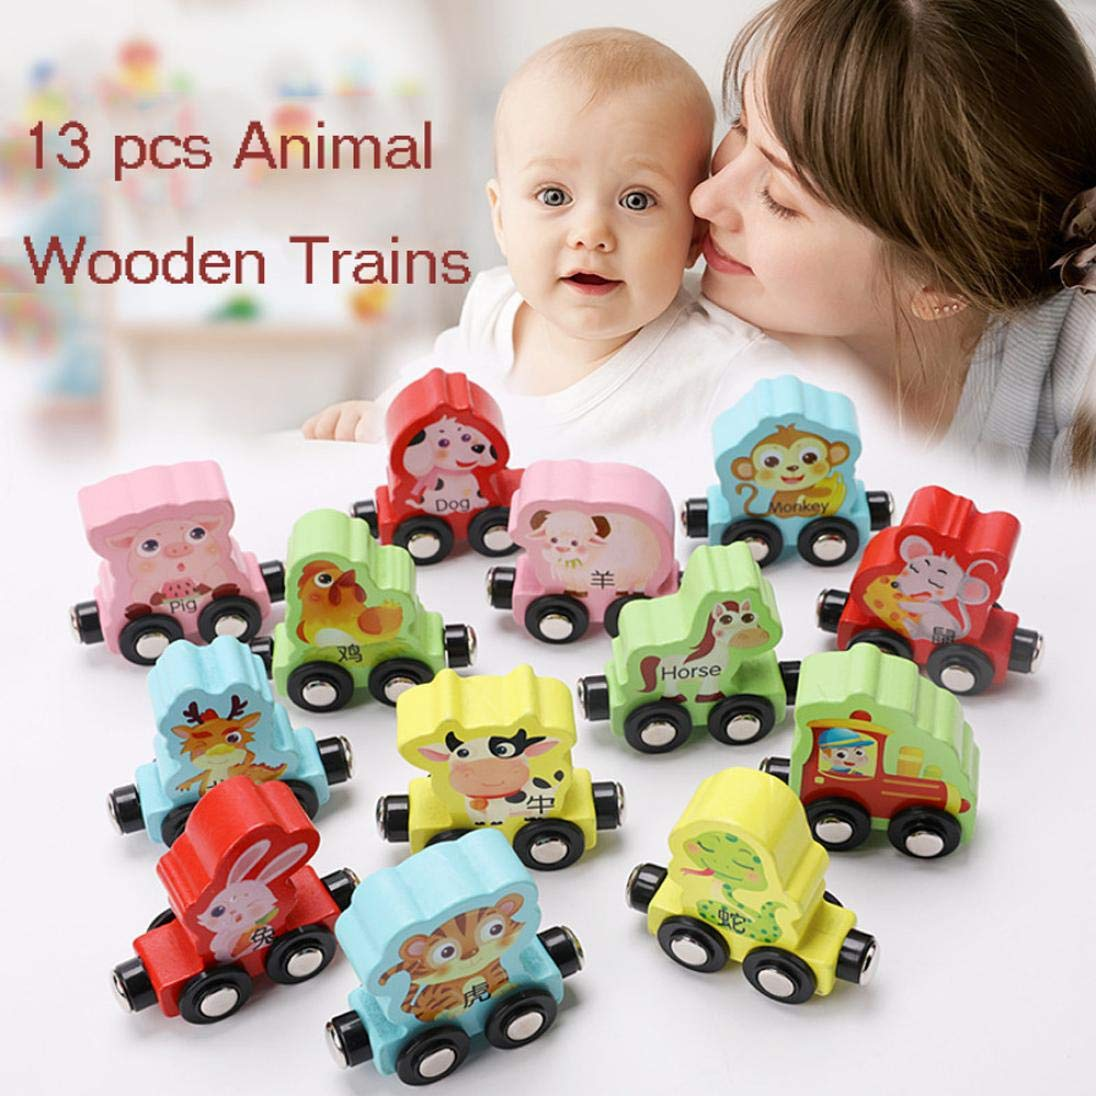 Gbell Kids Toddler Colorful Mini Wooden Train Set - 13Pcs Animal Learning Educational Toy Gifts Toddlers Girls Boys Kids Over 3 Year Old (Multicolor) by Gbell (Image #5)